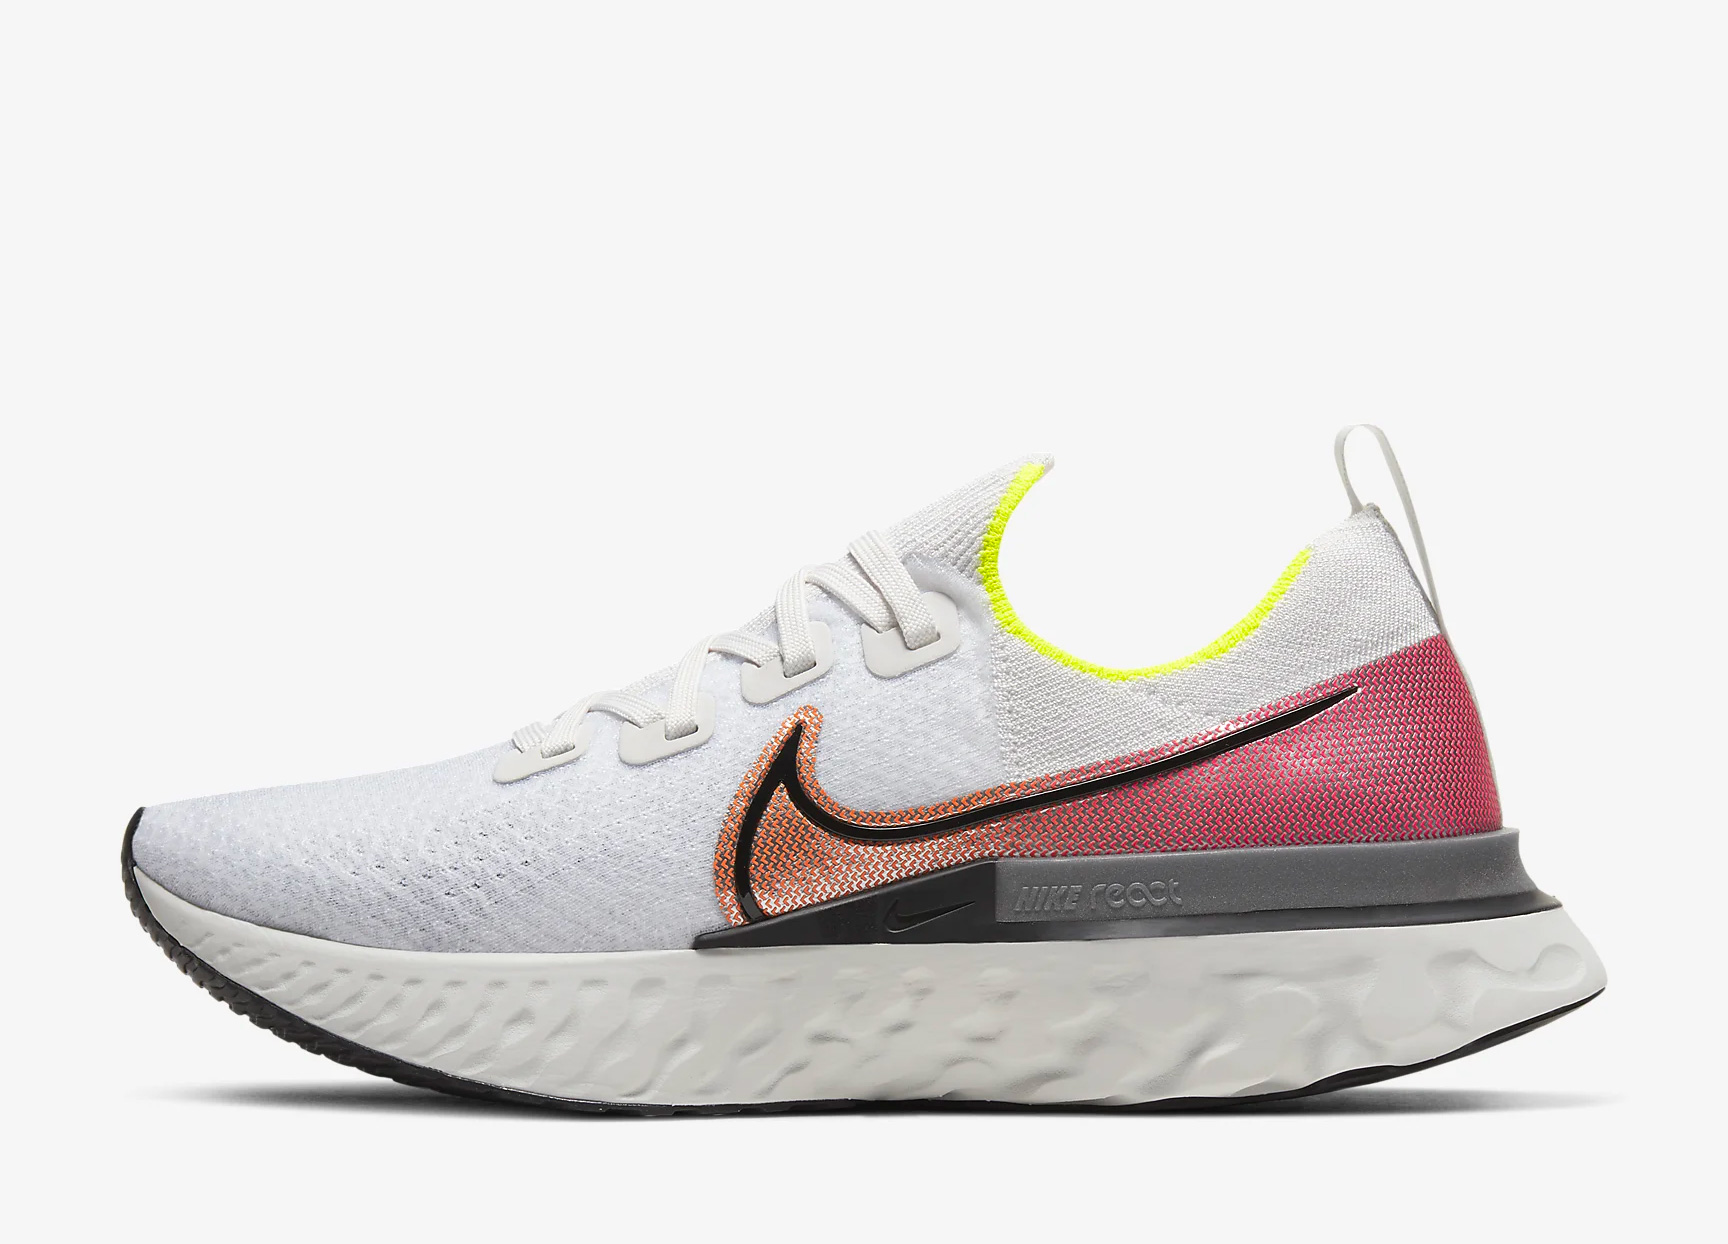 Nike Introduces Injury-Fighting React Infinity Run at werd.com